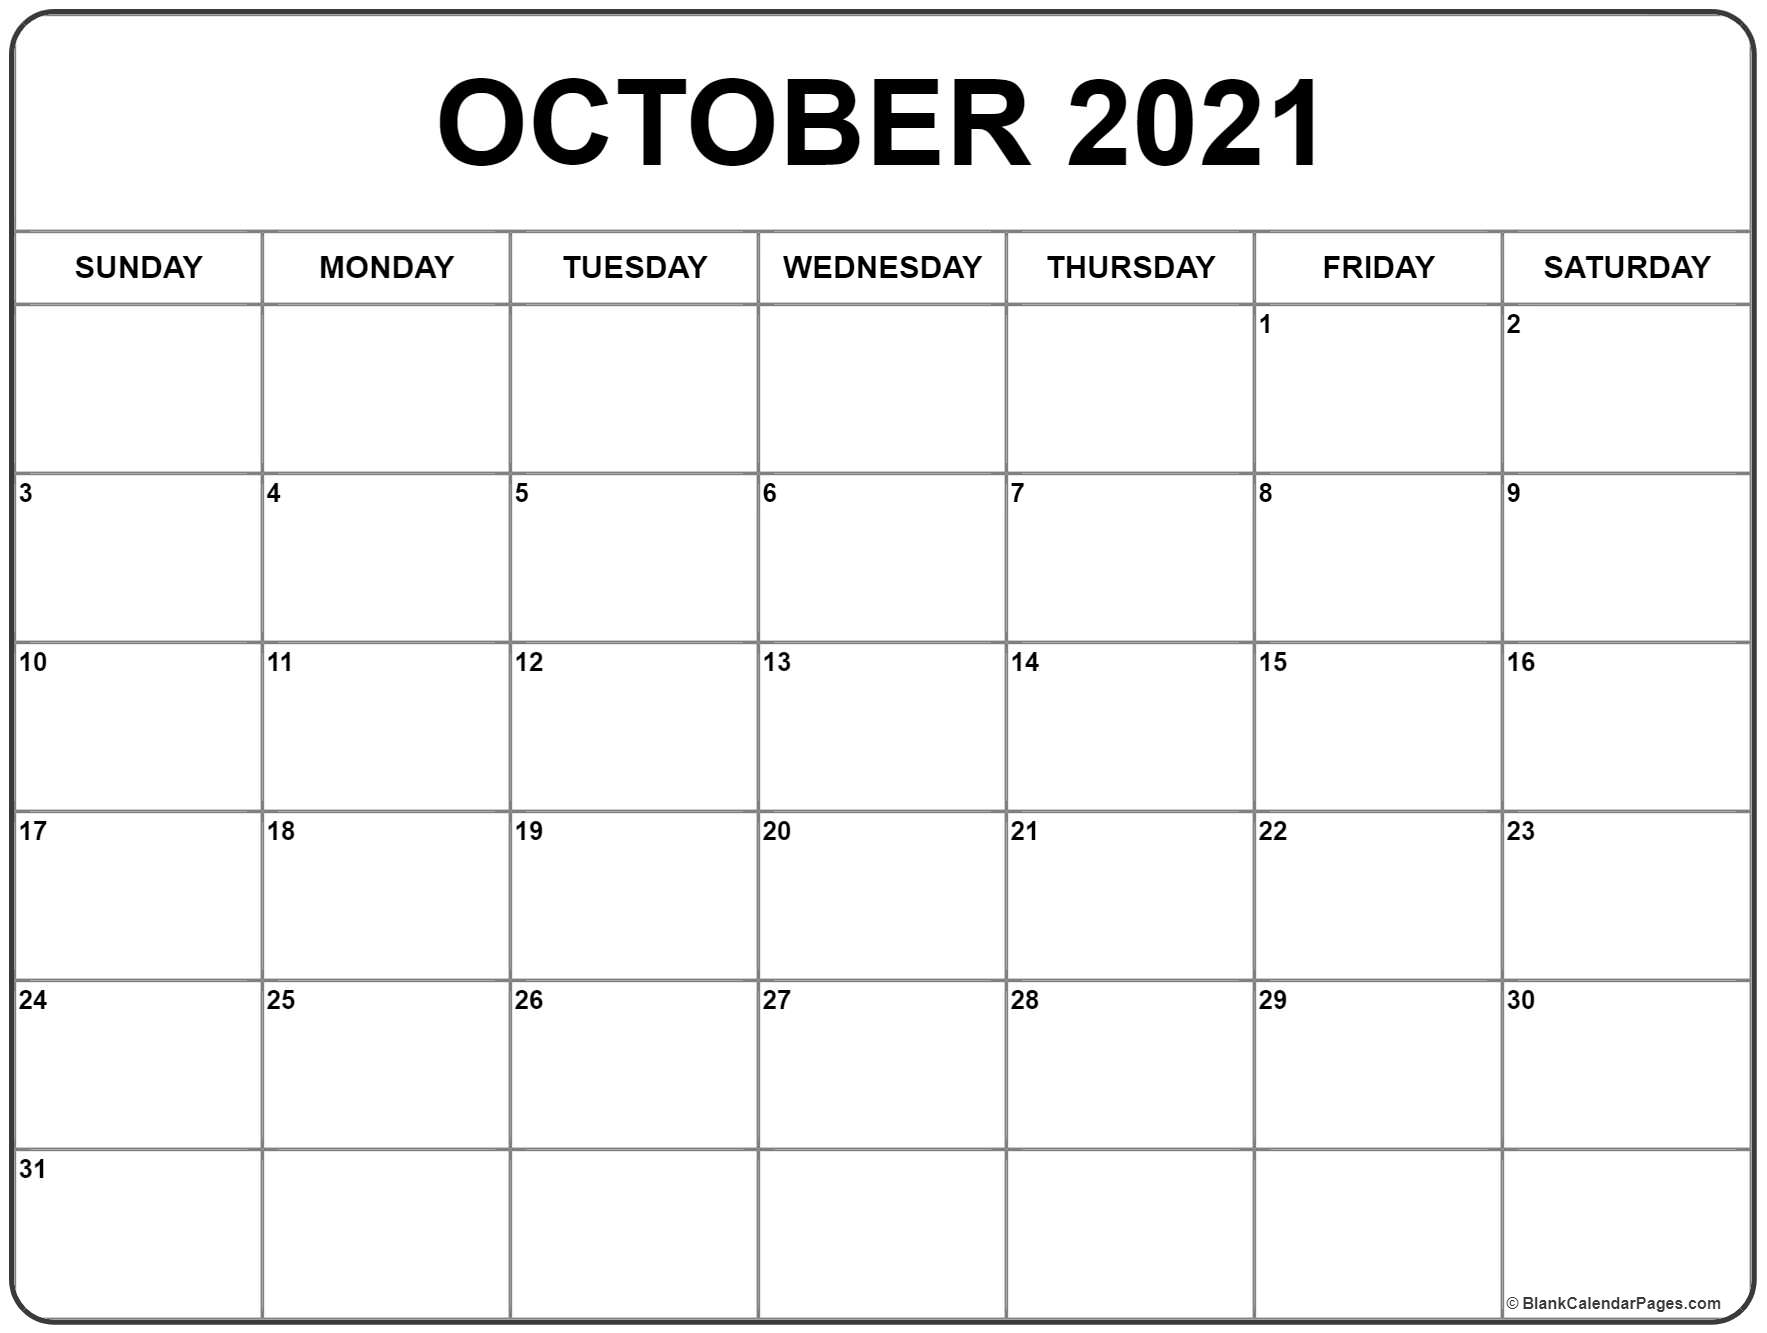 October 2018 calendar | 51+ calendar templates of 2018 calendars